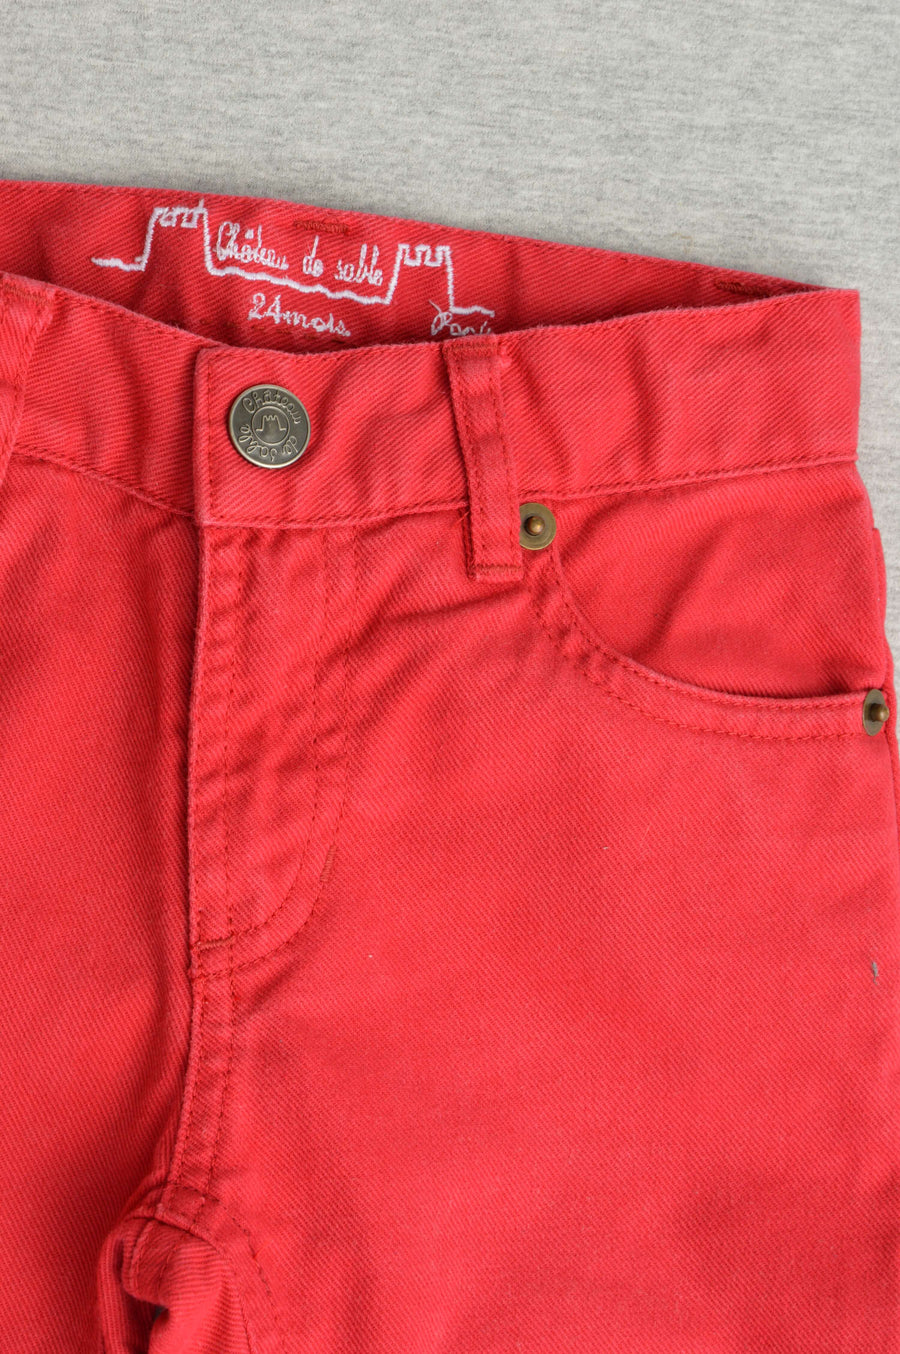 Château de Sable bright red jeans, size 2